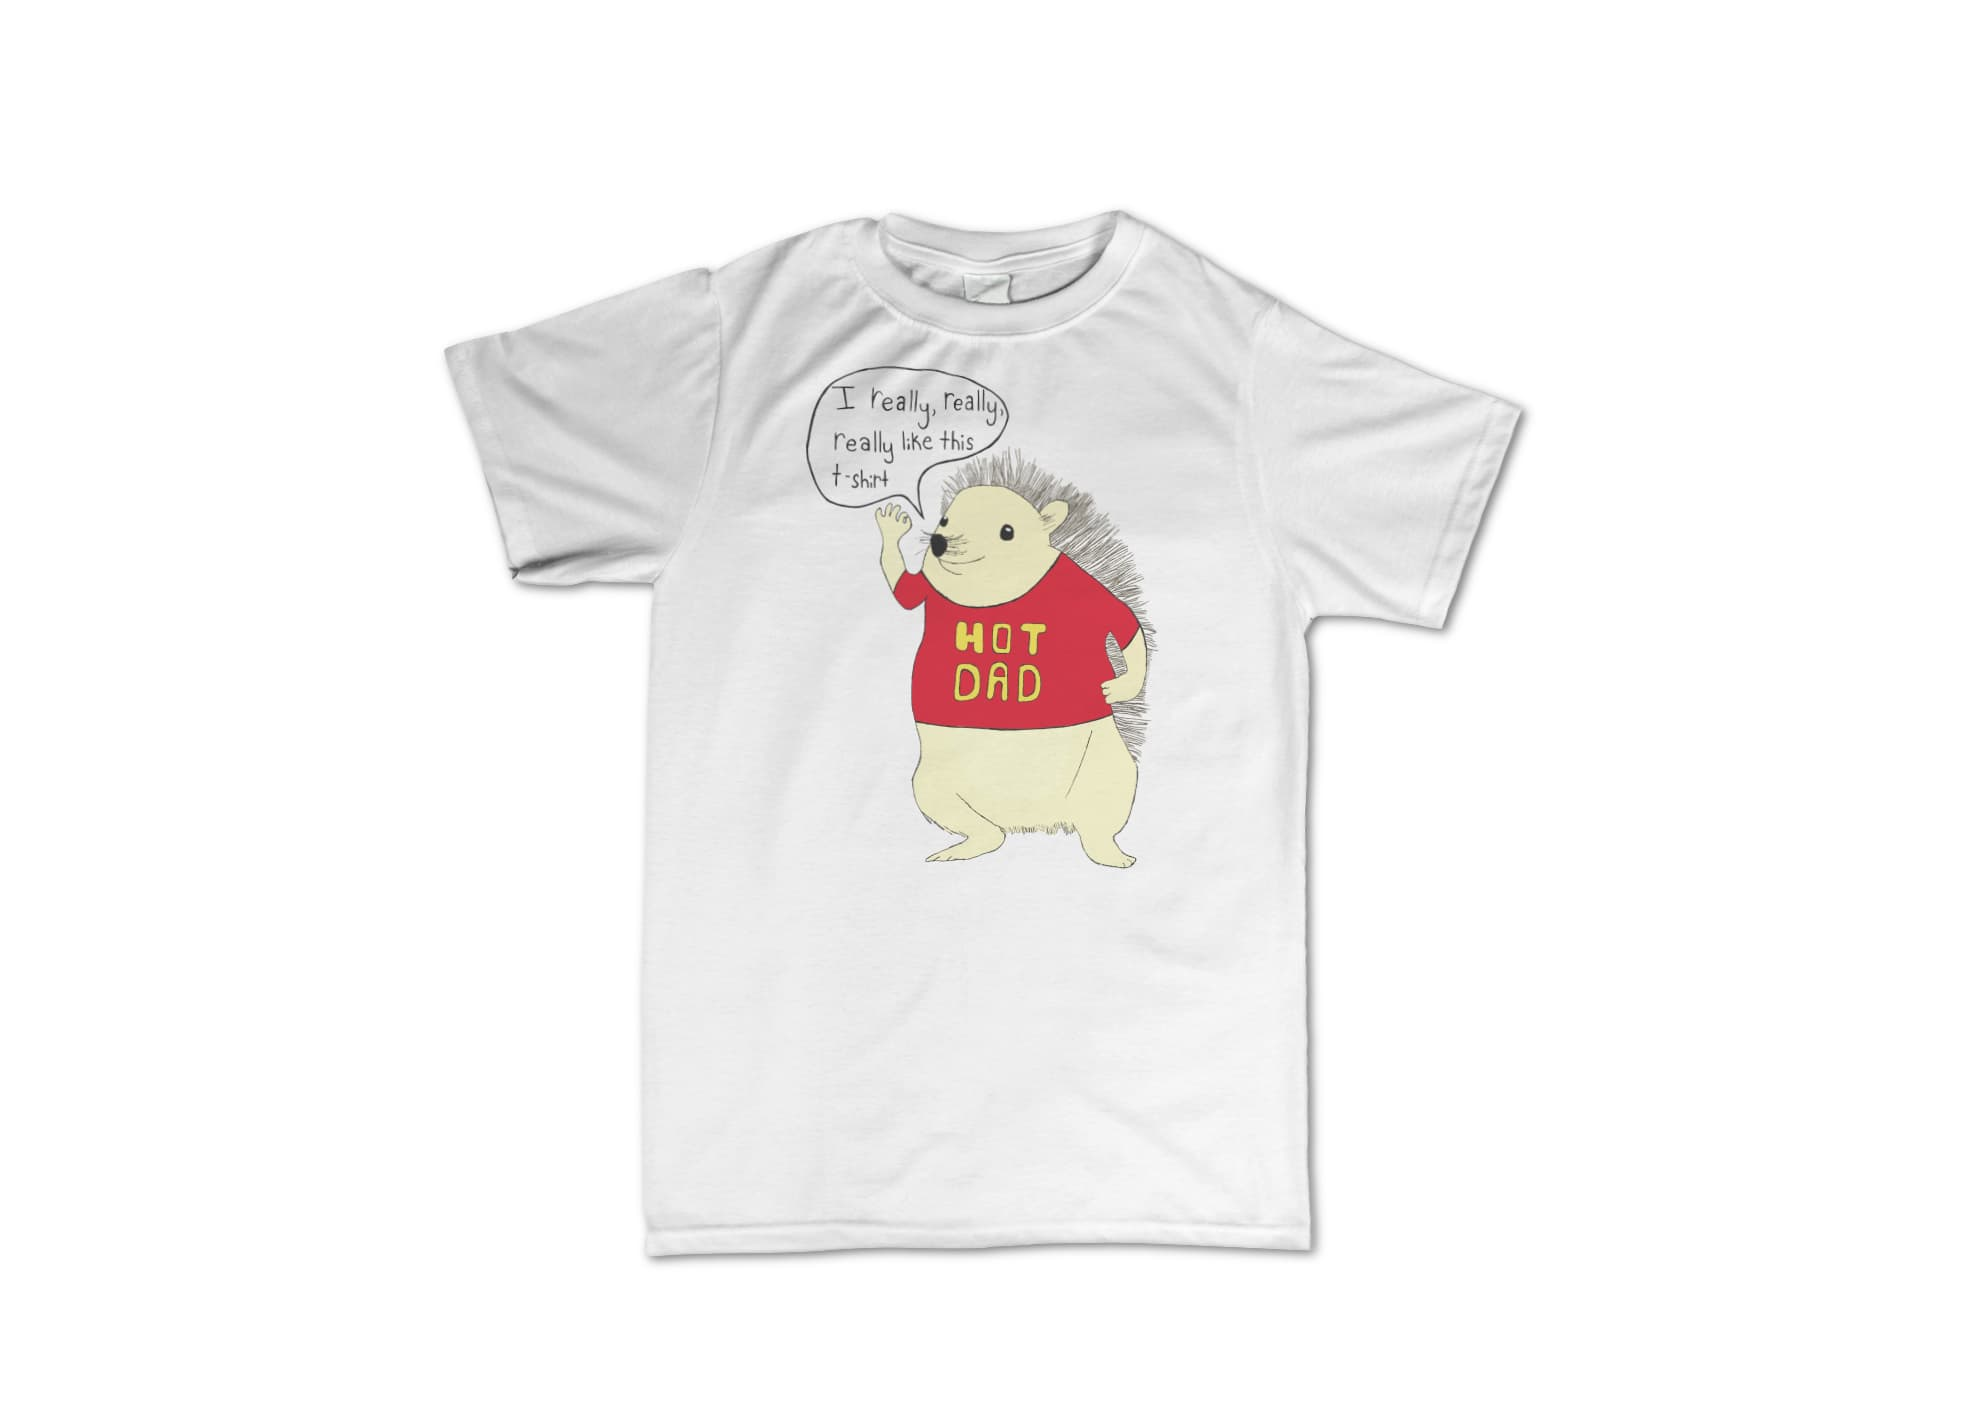 Hot dad i really  really  really  like this t shirt  white  1488384433